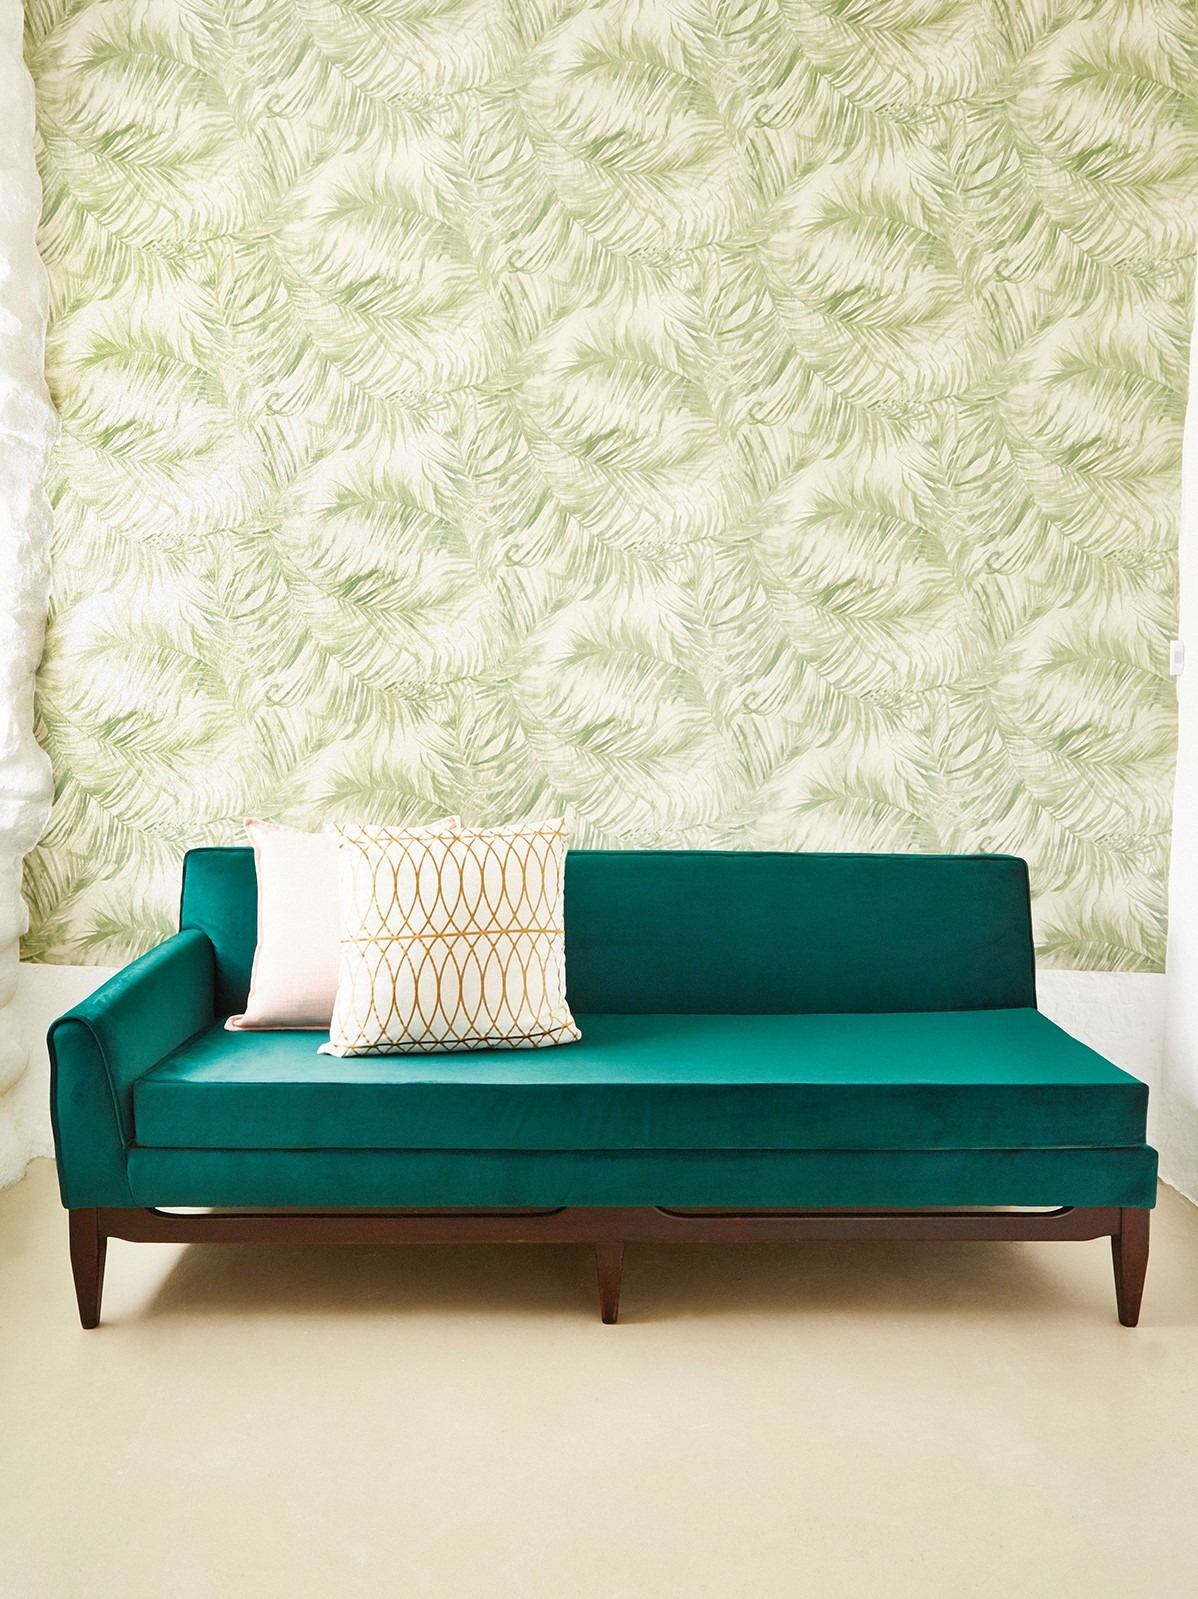 How to Reupholster a Emerald Green Velvet Sofa with steps